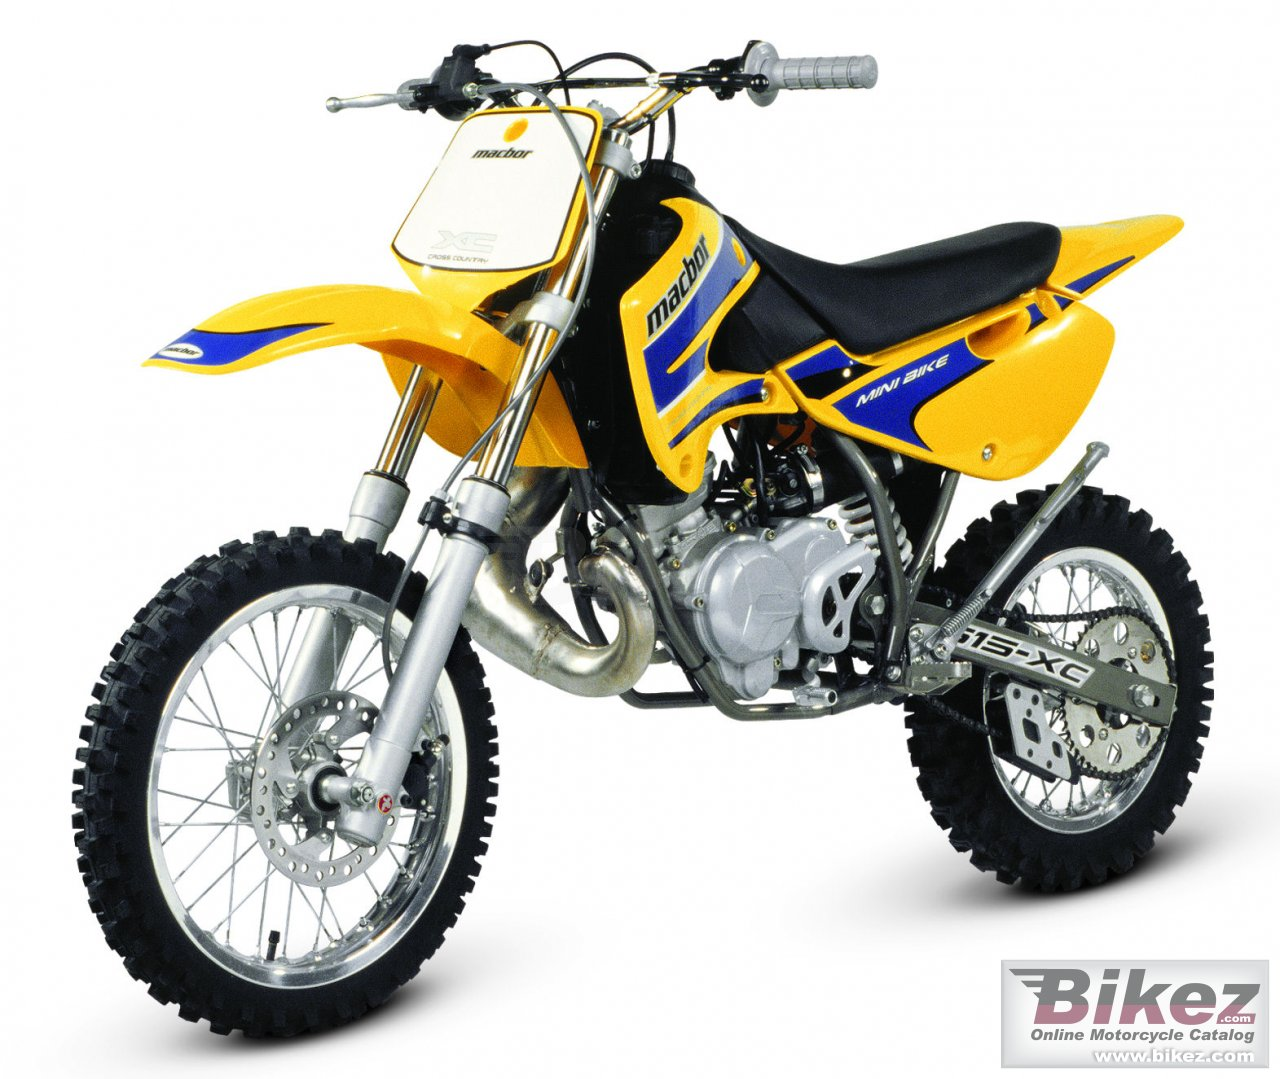 Big Macbor xc 512 r 6v picture and wallpaper from Bikez.com